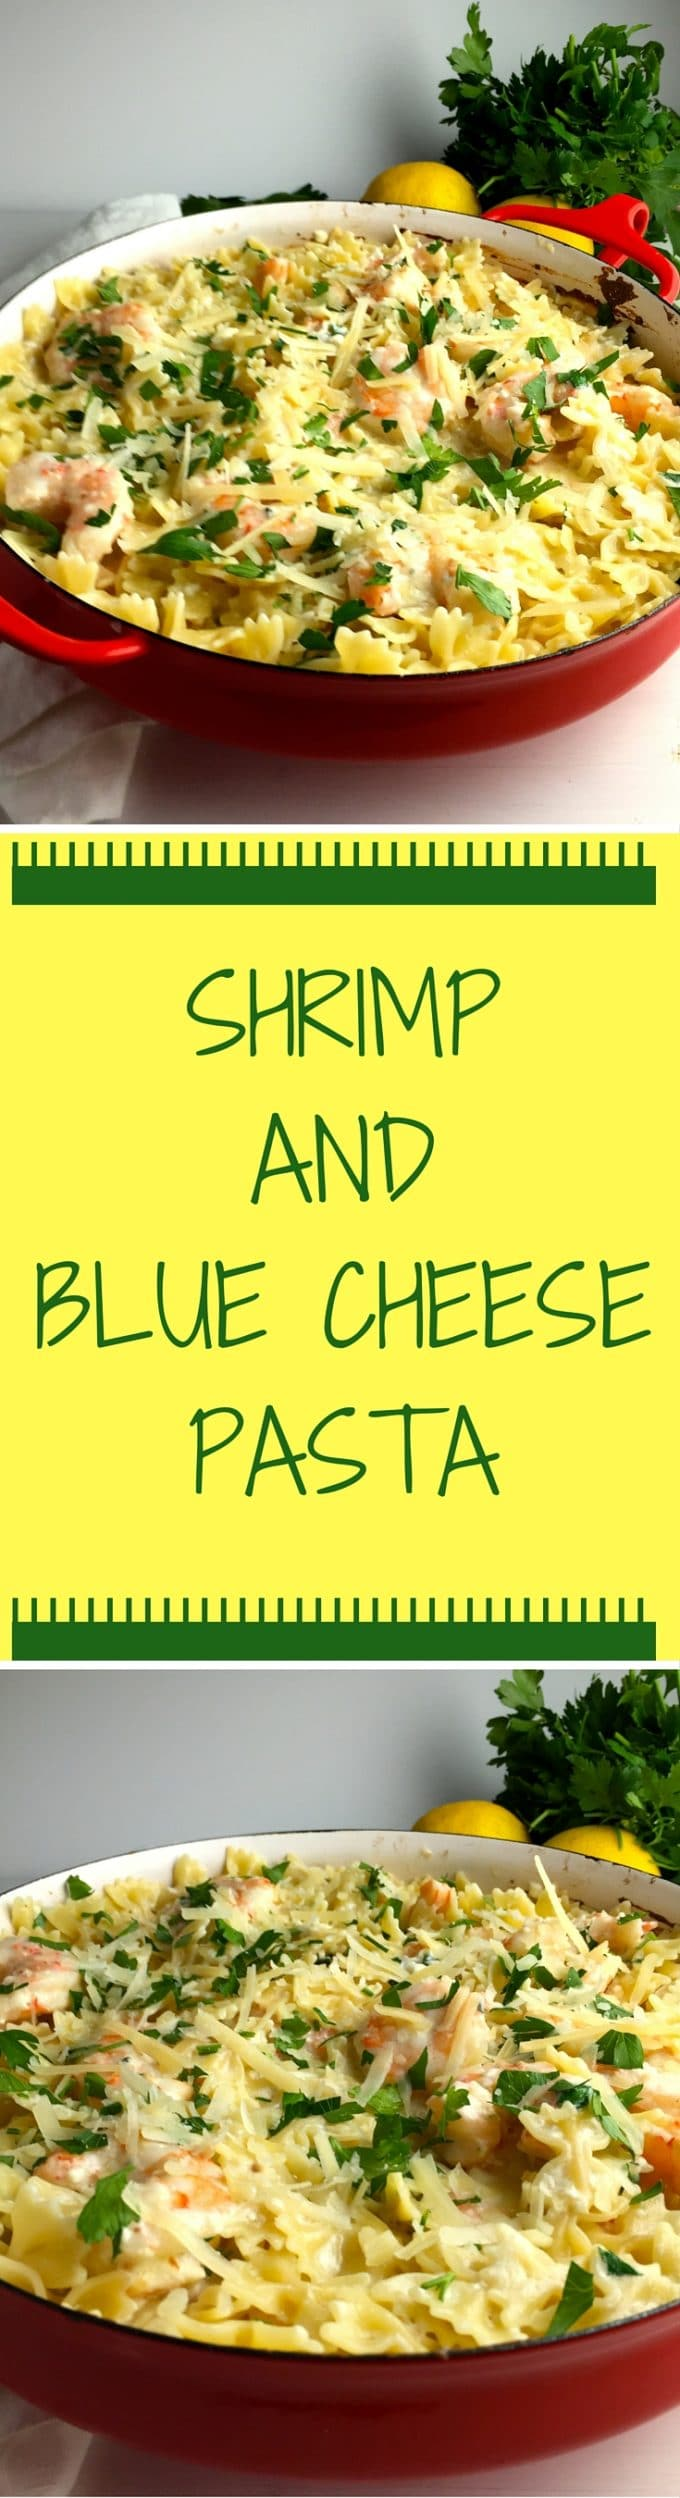 Shrimp and Blue Cheese Pasta is tender shrimp mixed with a decadent blue cheese sauce over yummy pasta covered with parmesan cheese.